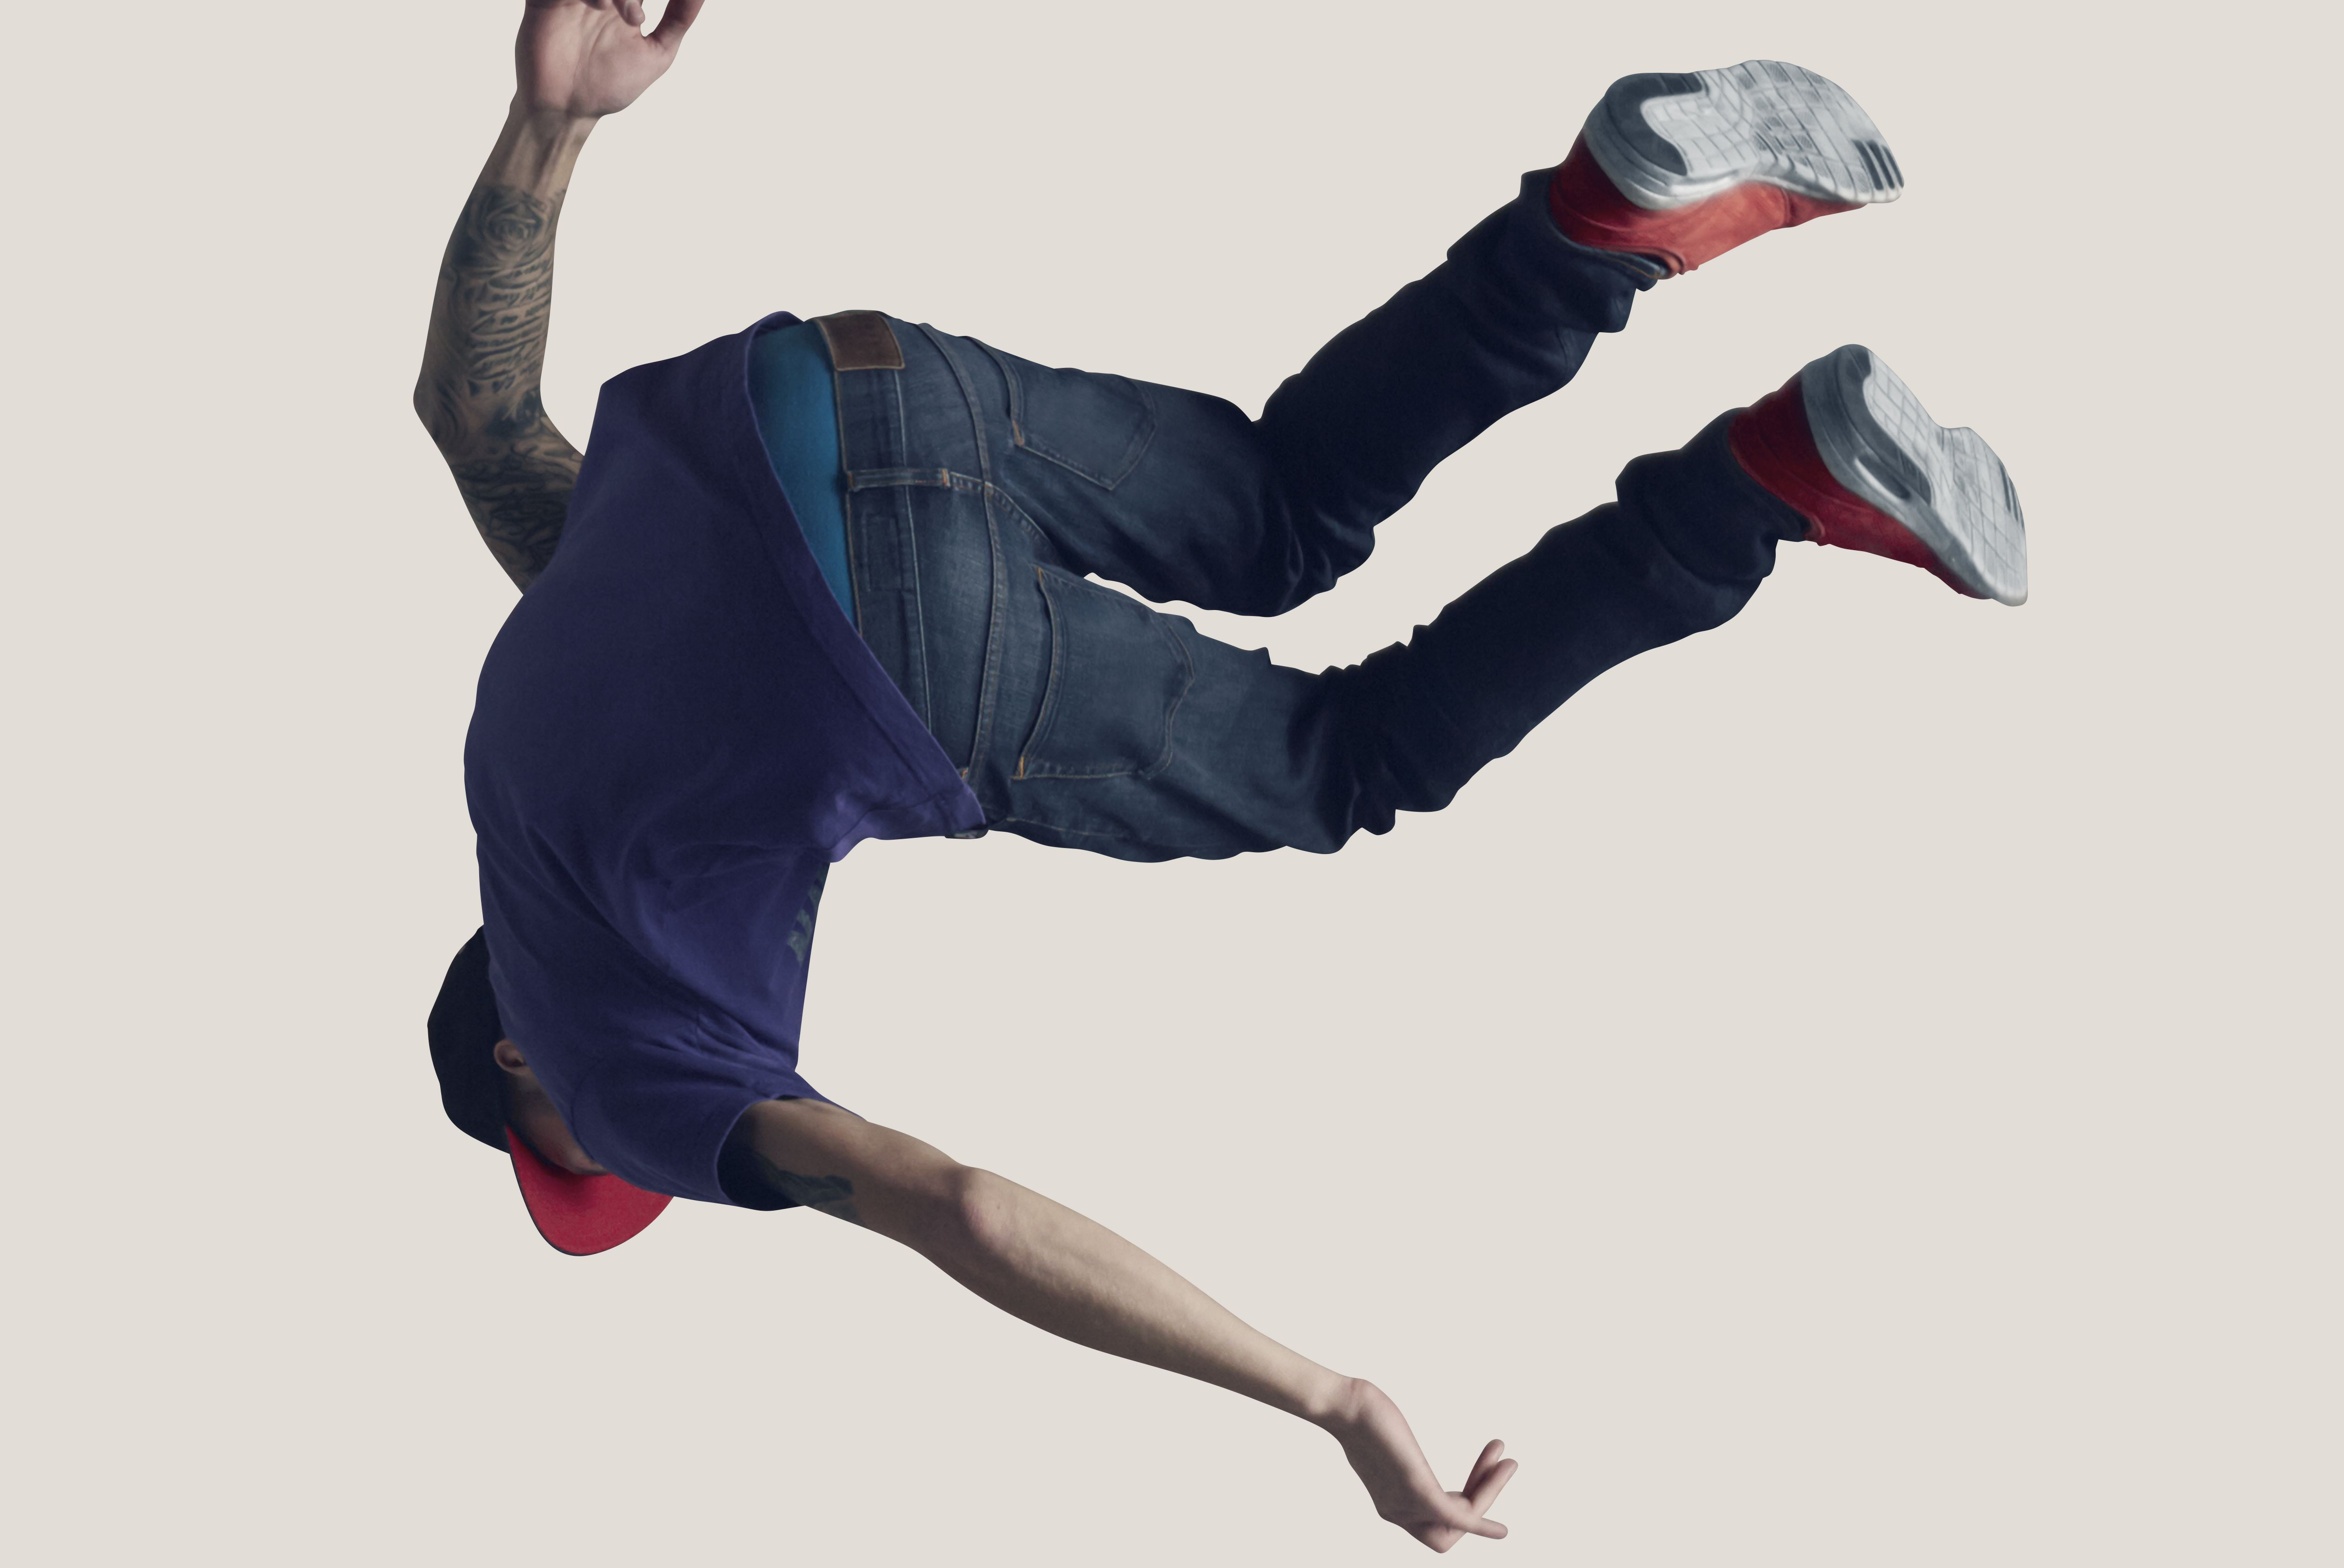 Young man hanging in the air, back to camera